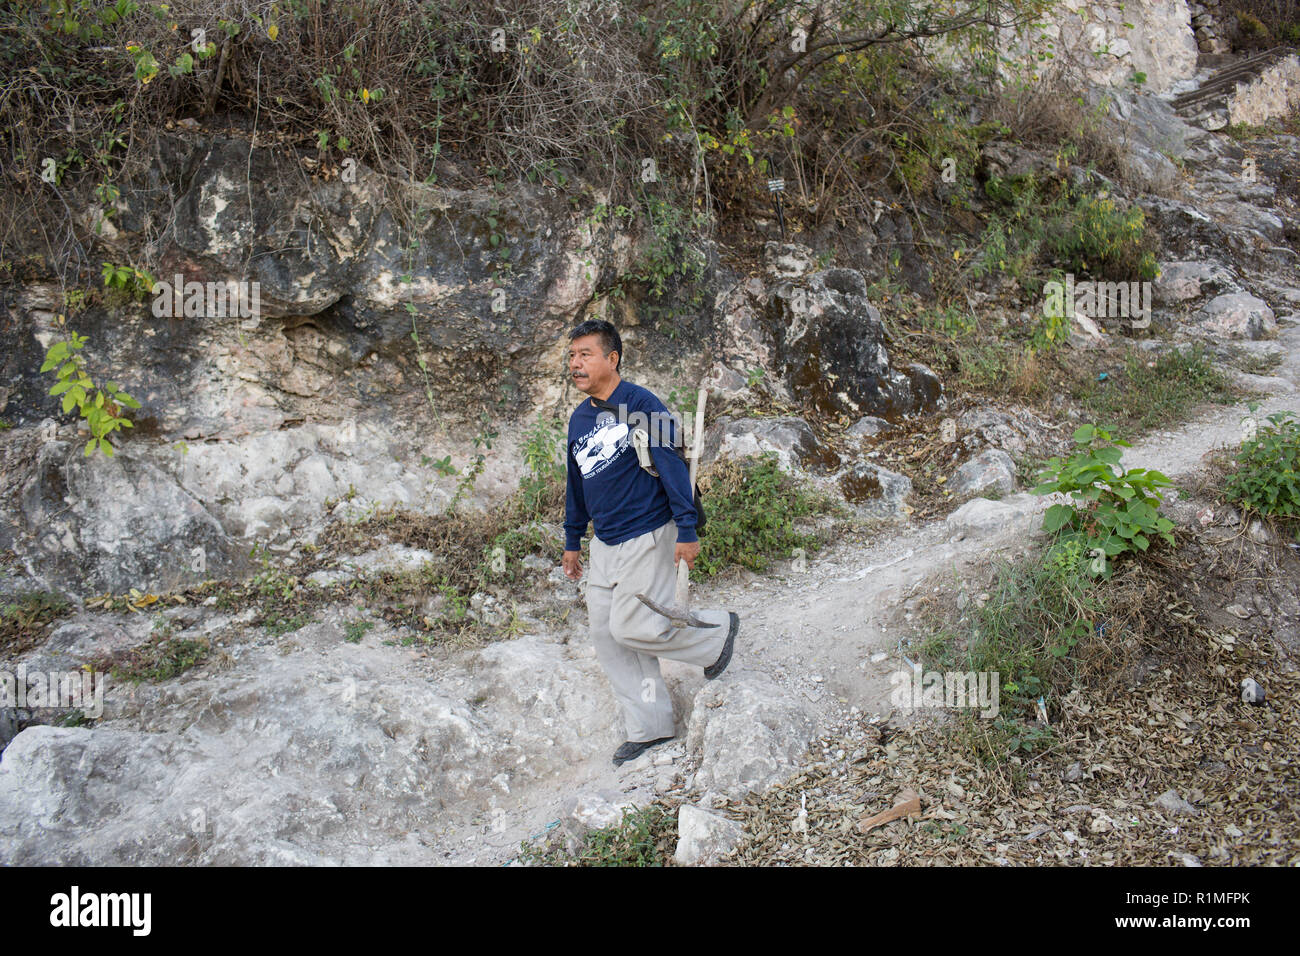 Victor Tepec Velez, leaves his house on the outskirts of Iguala, Guerrero, Mexico, February 7, 2016. Tepec Velez's son Jesus David Tepec Avalos, went missing while driving a local bus in Iguala. Jesus was 29 years old, when he disappeared April 30, 2014. Jesus' bus was found with the doors open and the keys in the ignition, his family hasn't seen him since.    ÒWe just want to find him, weather he is dead or alive,Ó said Victor. He and his 13 year old daughter Guadalupe take part in weekly searches for clandestine graves with other family members of missing people.   ÒShe (Guadalupe) is very p Stock Photo